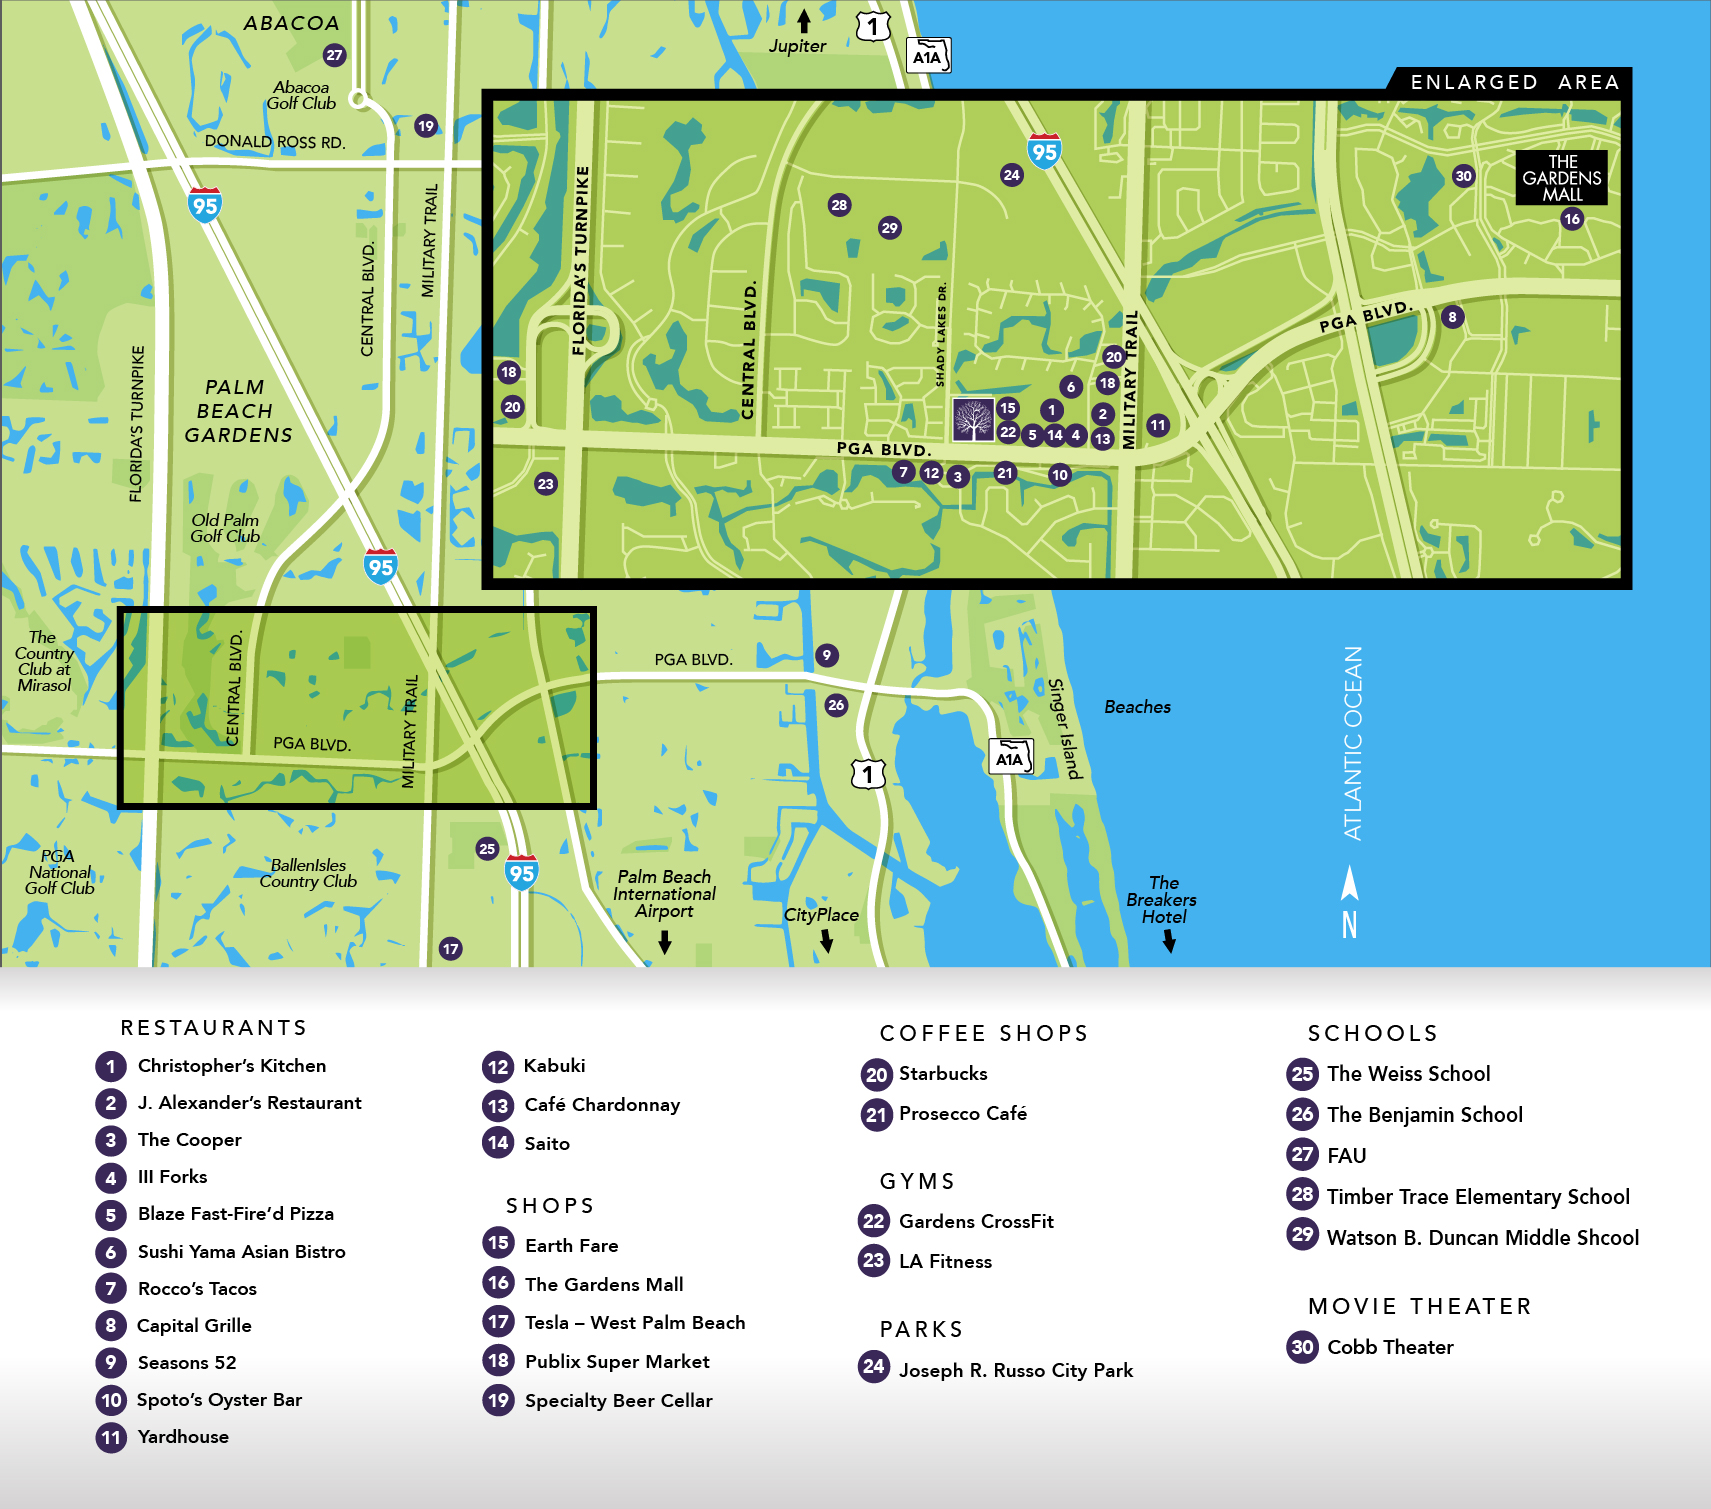 Pointe Midtown area map